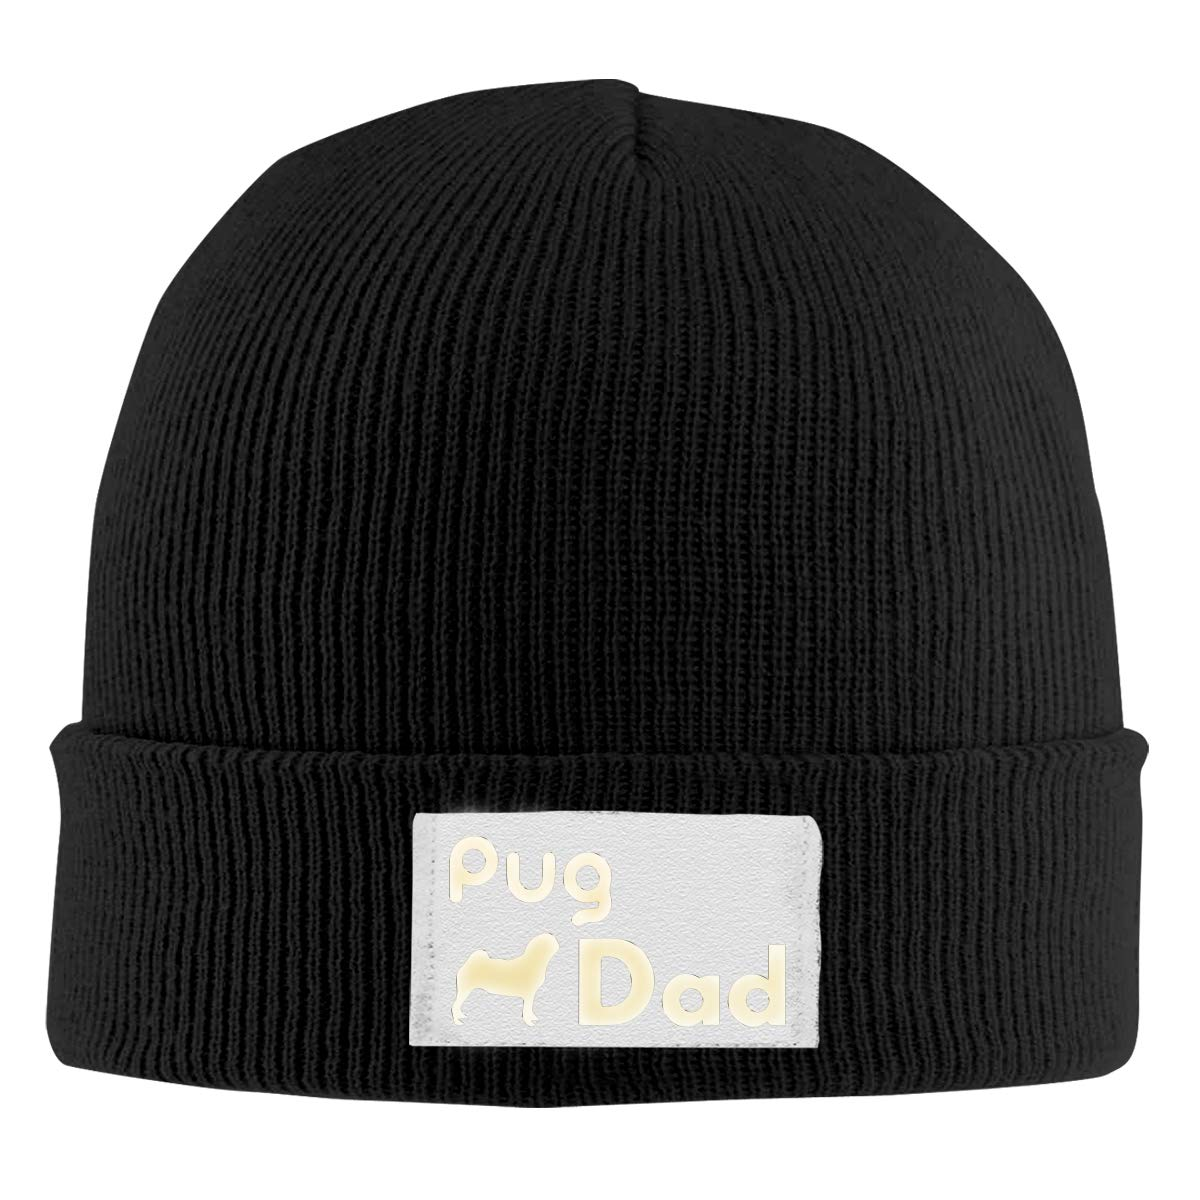 Dunpaiaa Skull Caps Bah Humbug Big Foam Winter Warm Knit Hats Stretchy Cuff Beanie Hat Black